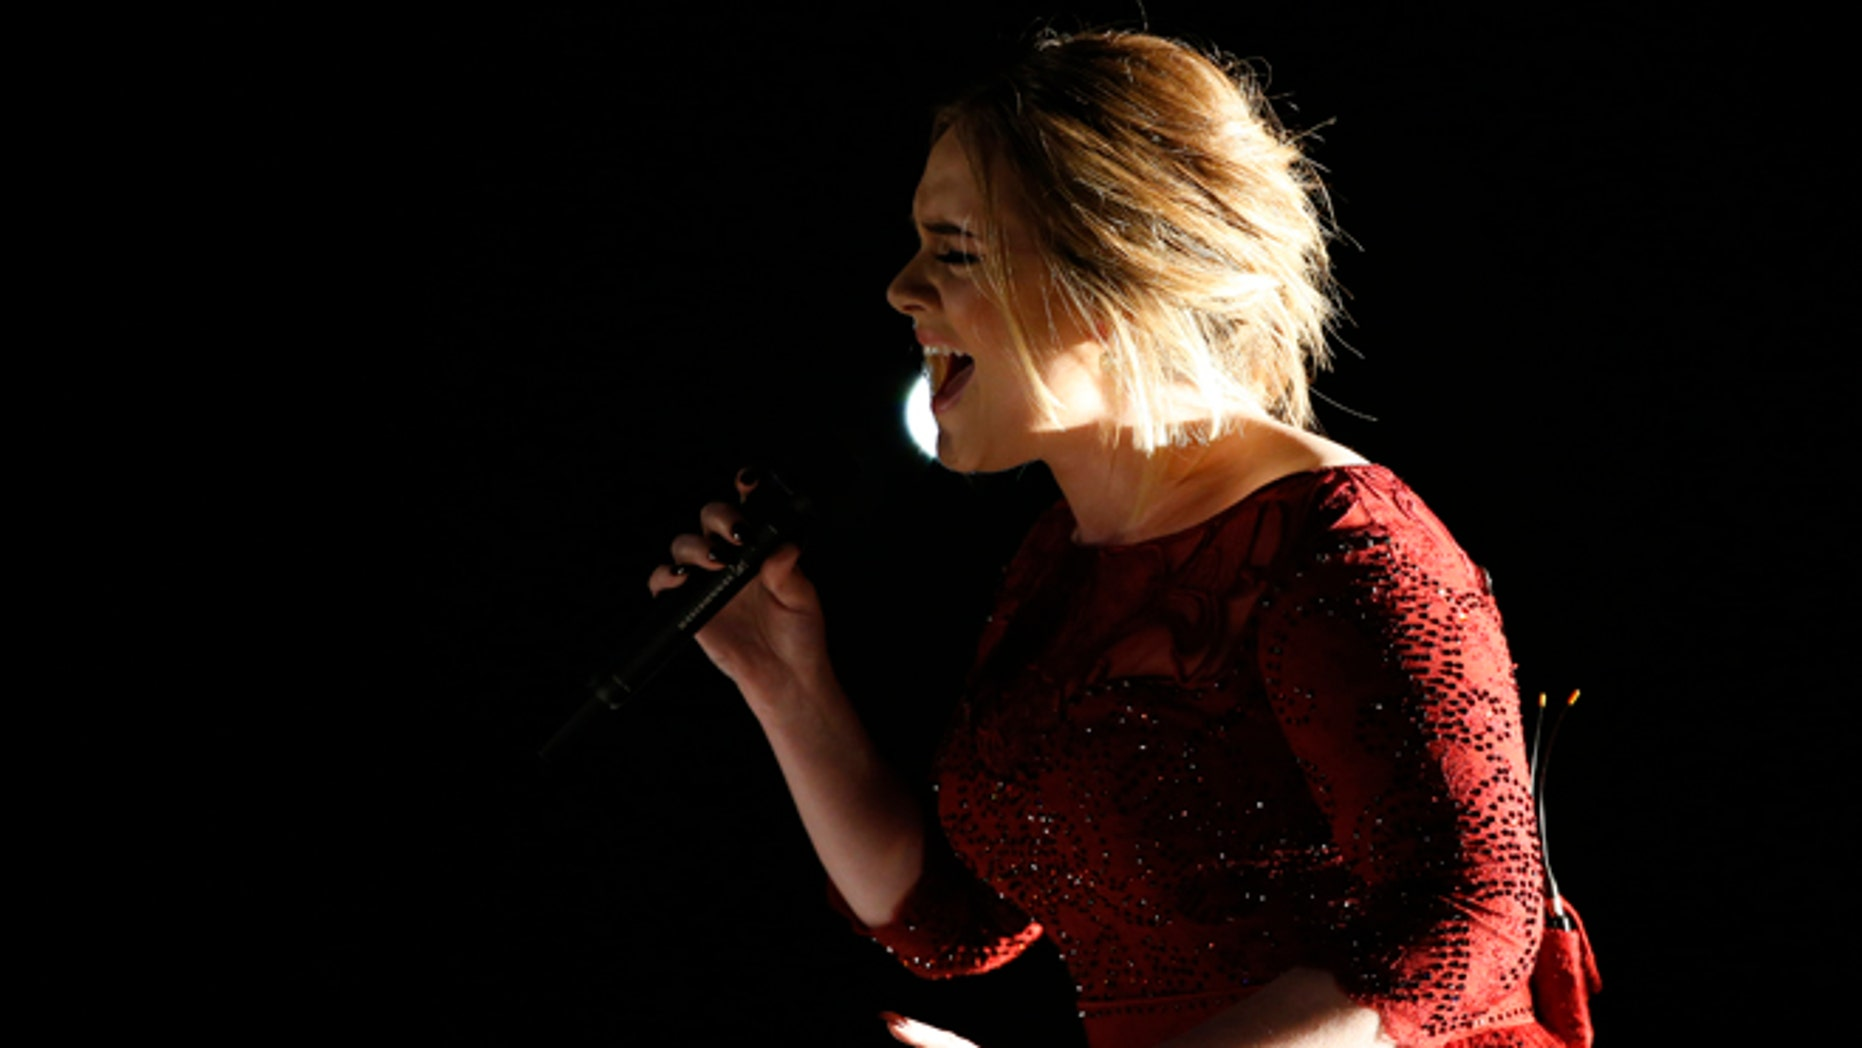 """February 15, 2016. Singer Adele performs """"All I Ask"""" on stage at the 58th Grammy Awards in Los Angeles, California."""